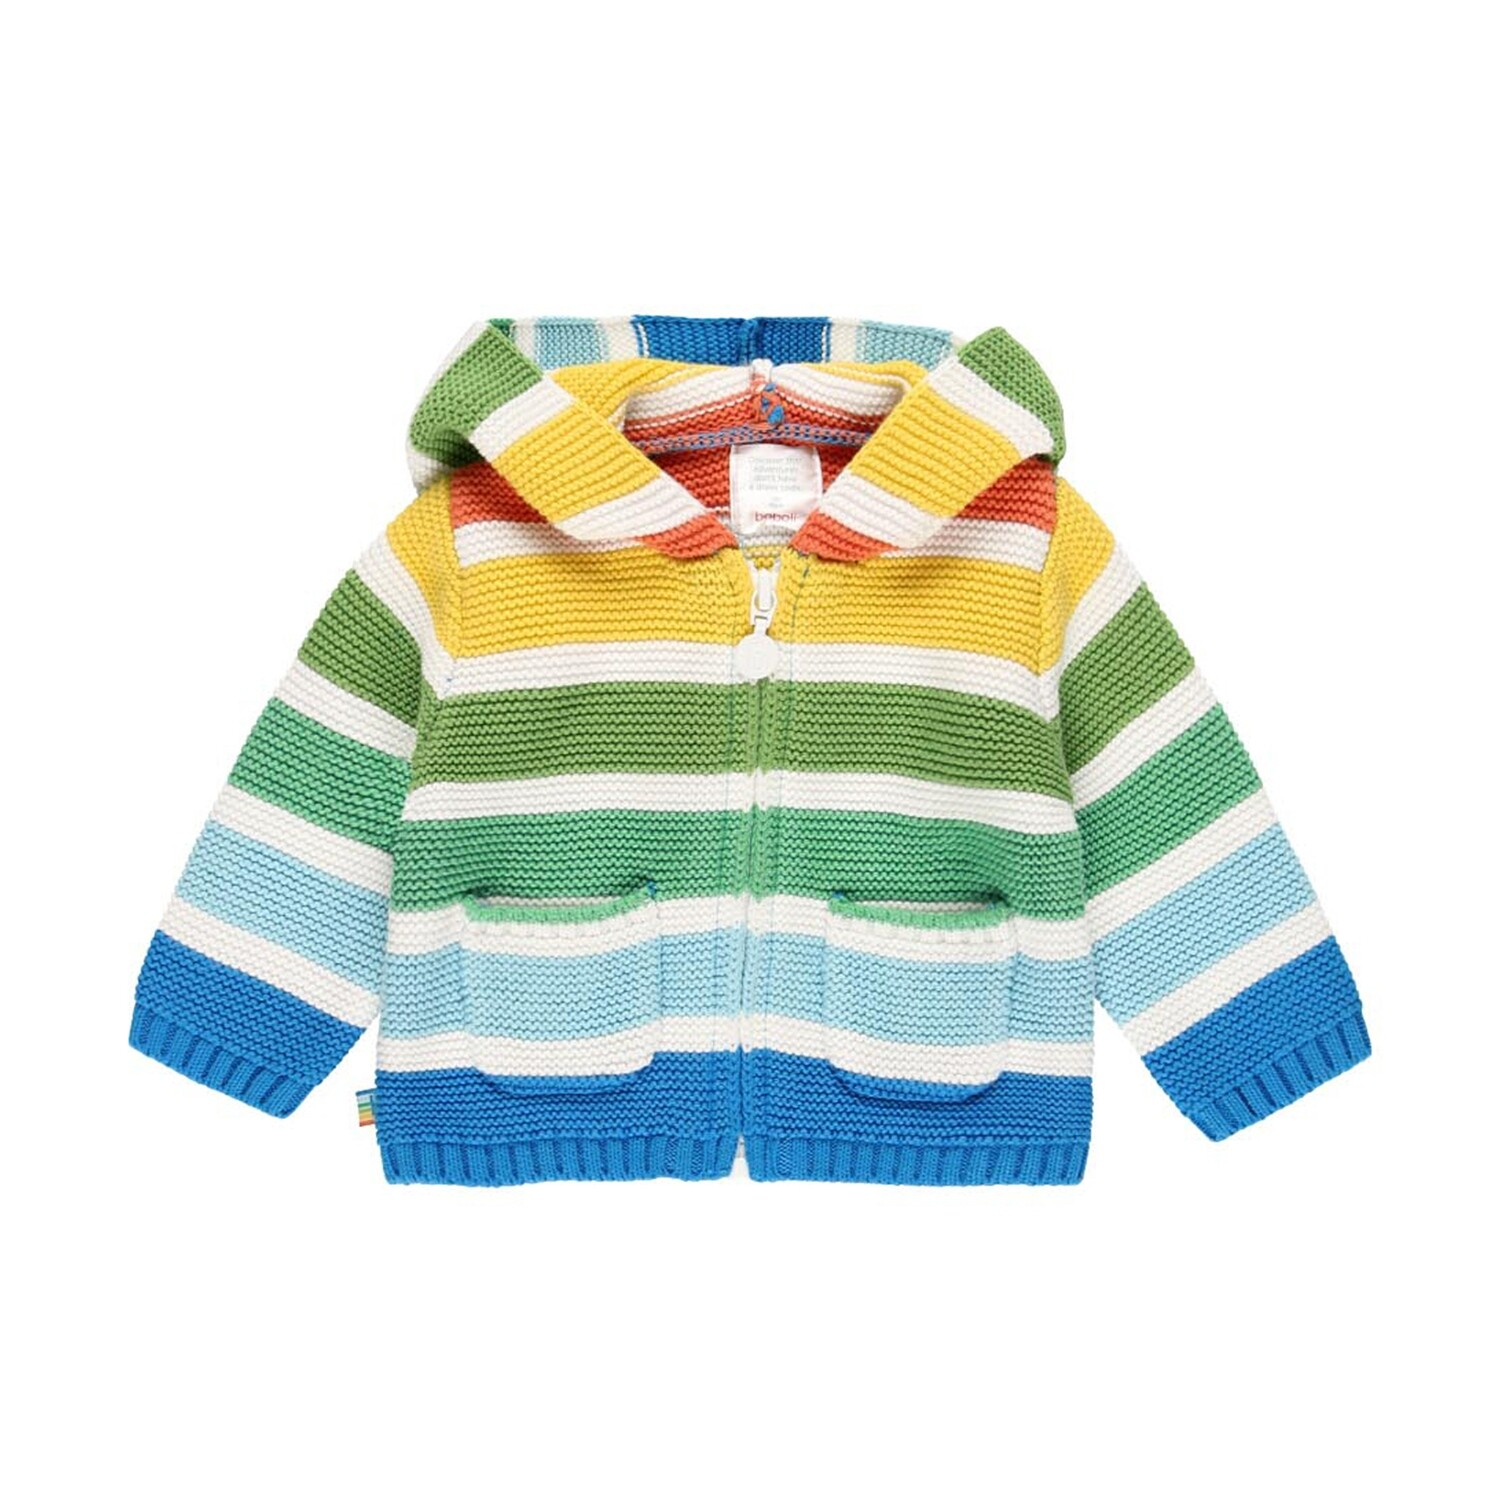 Boboli Baby Knitwear hooded jacket